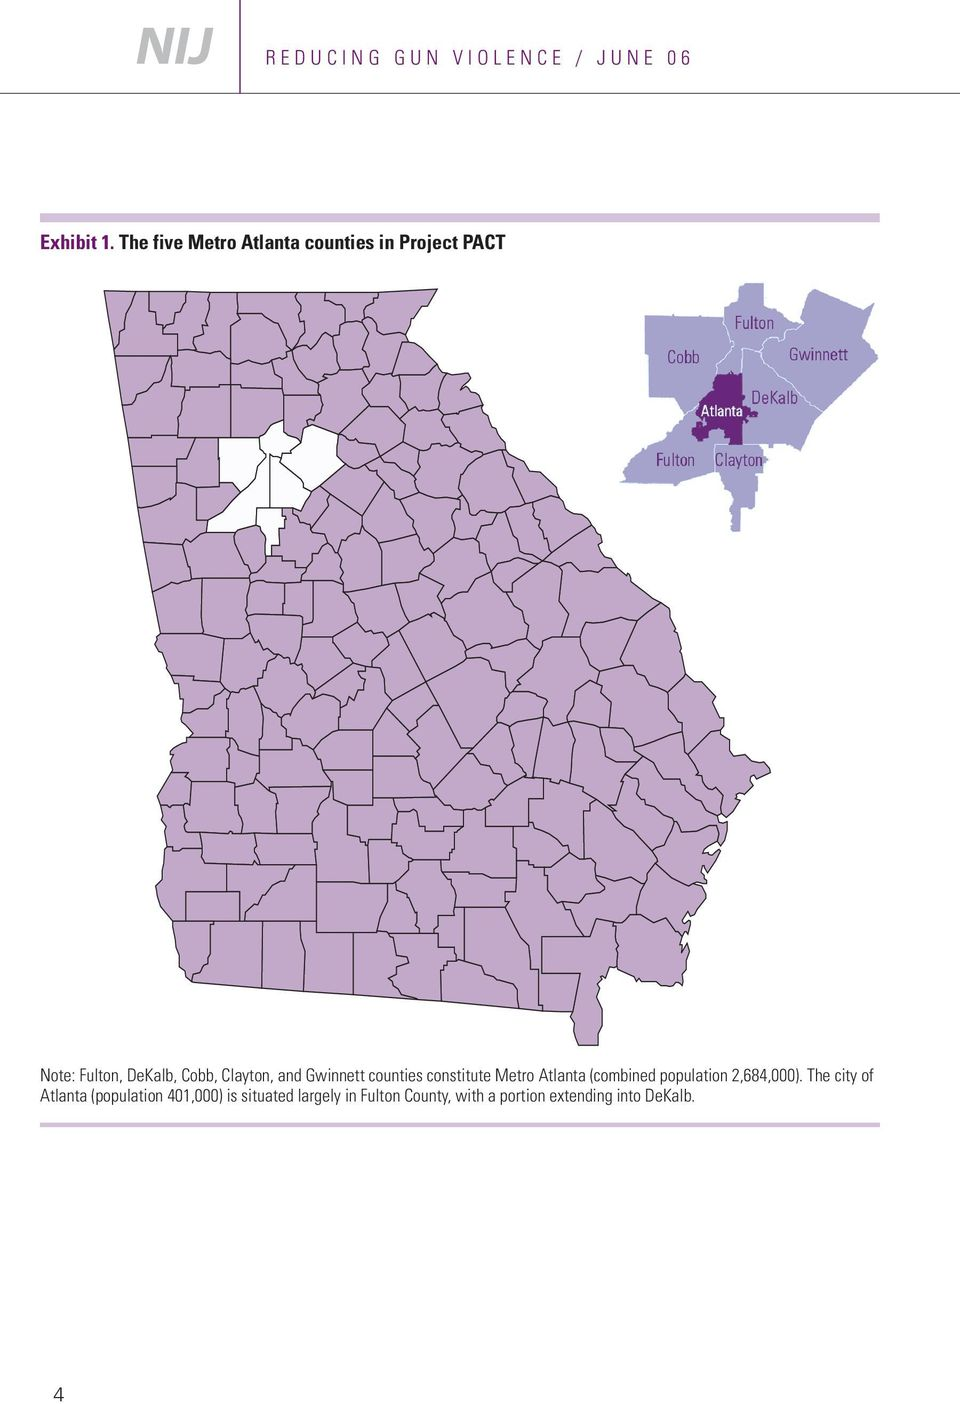 Clayton, and Gwinnett counties constitute Metro Atlanta (combined population